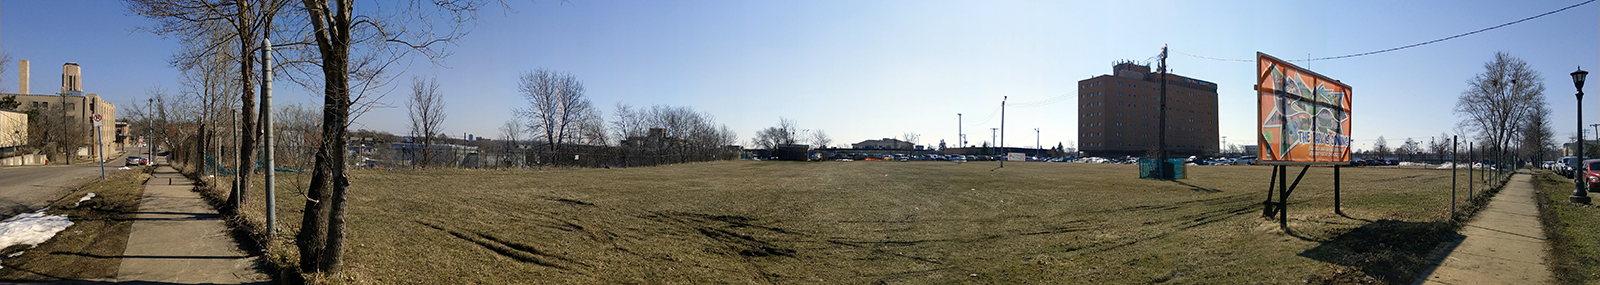 Panorama of Midway Peace Park (before construction)